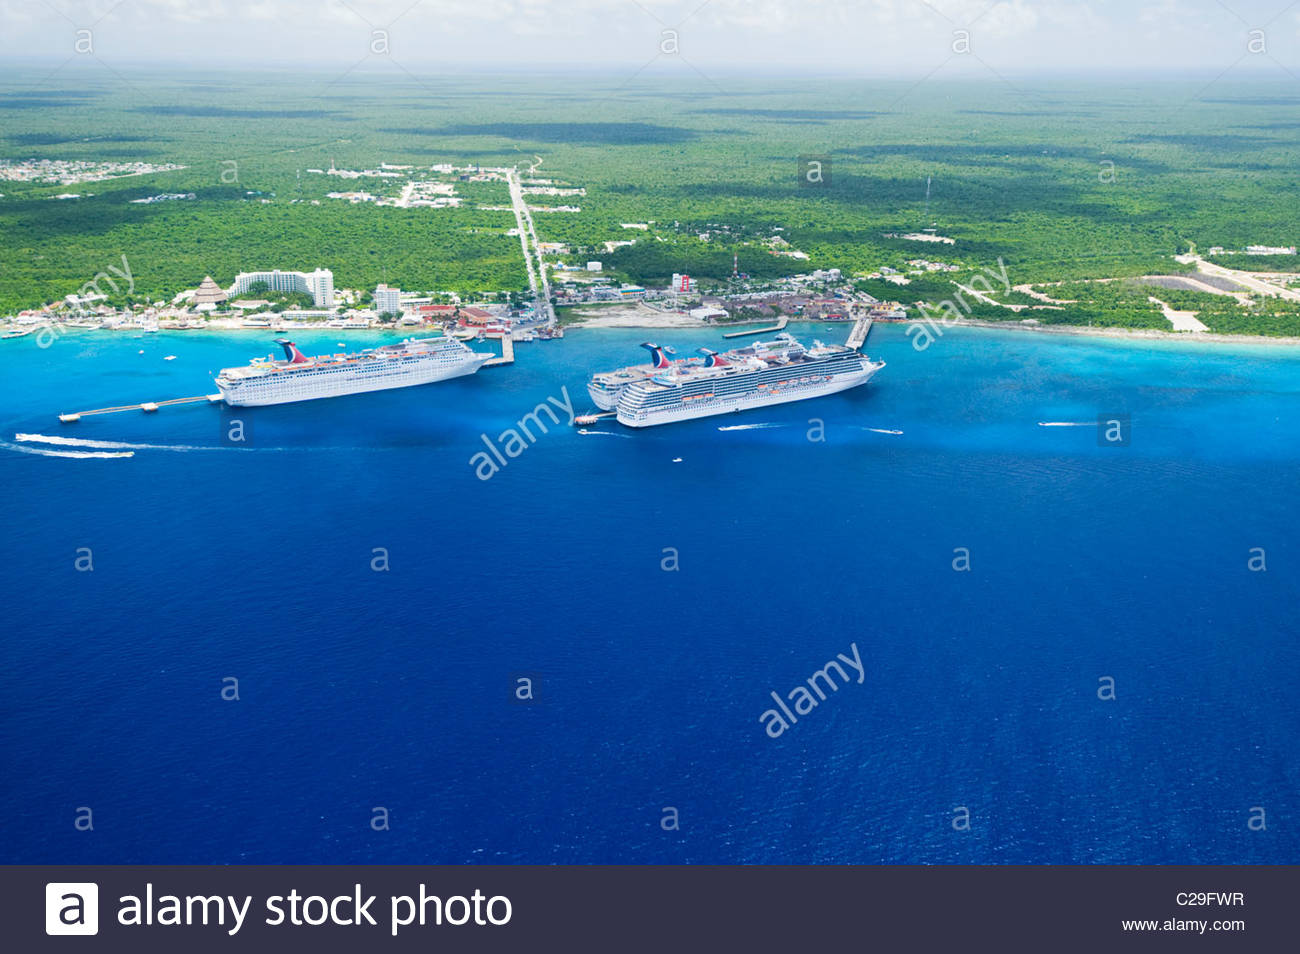 Aerial view of cruise ships docked at Cozumel, Mexico. - Stock Image